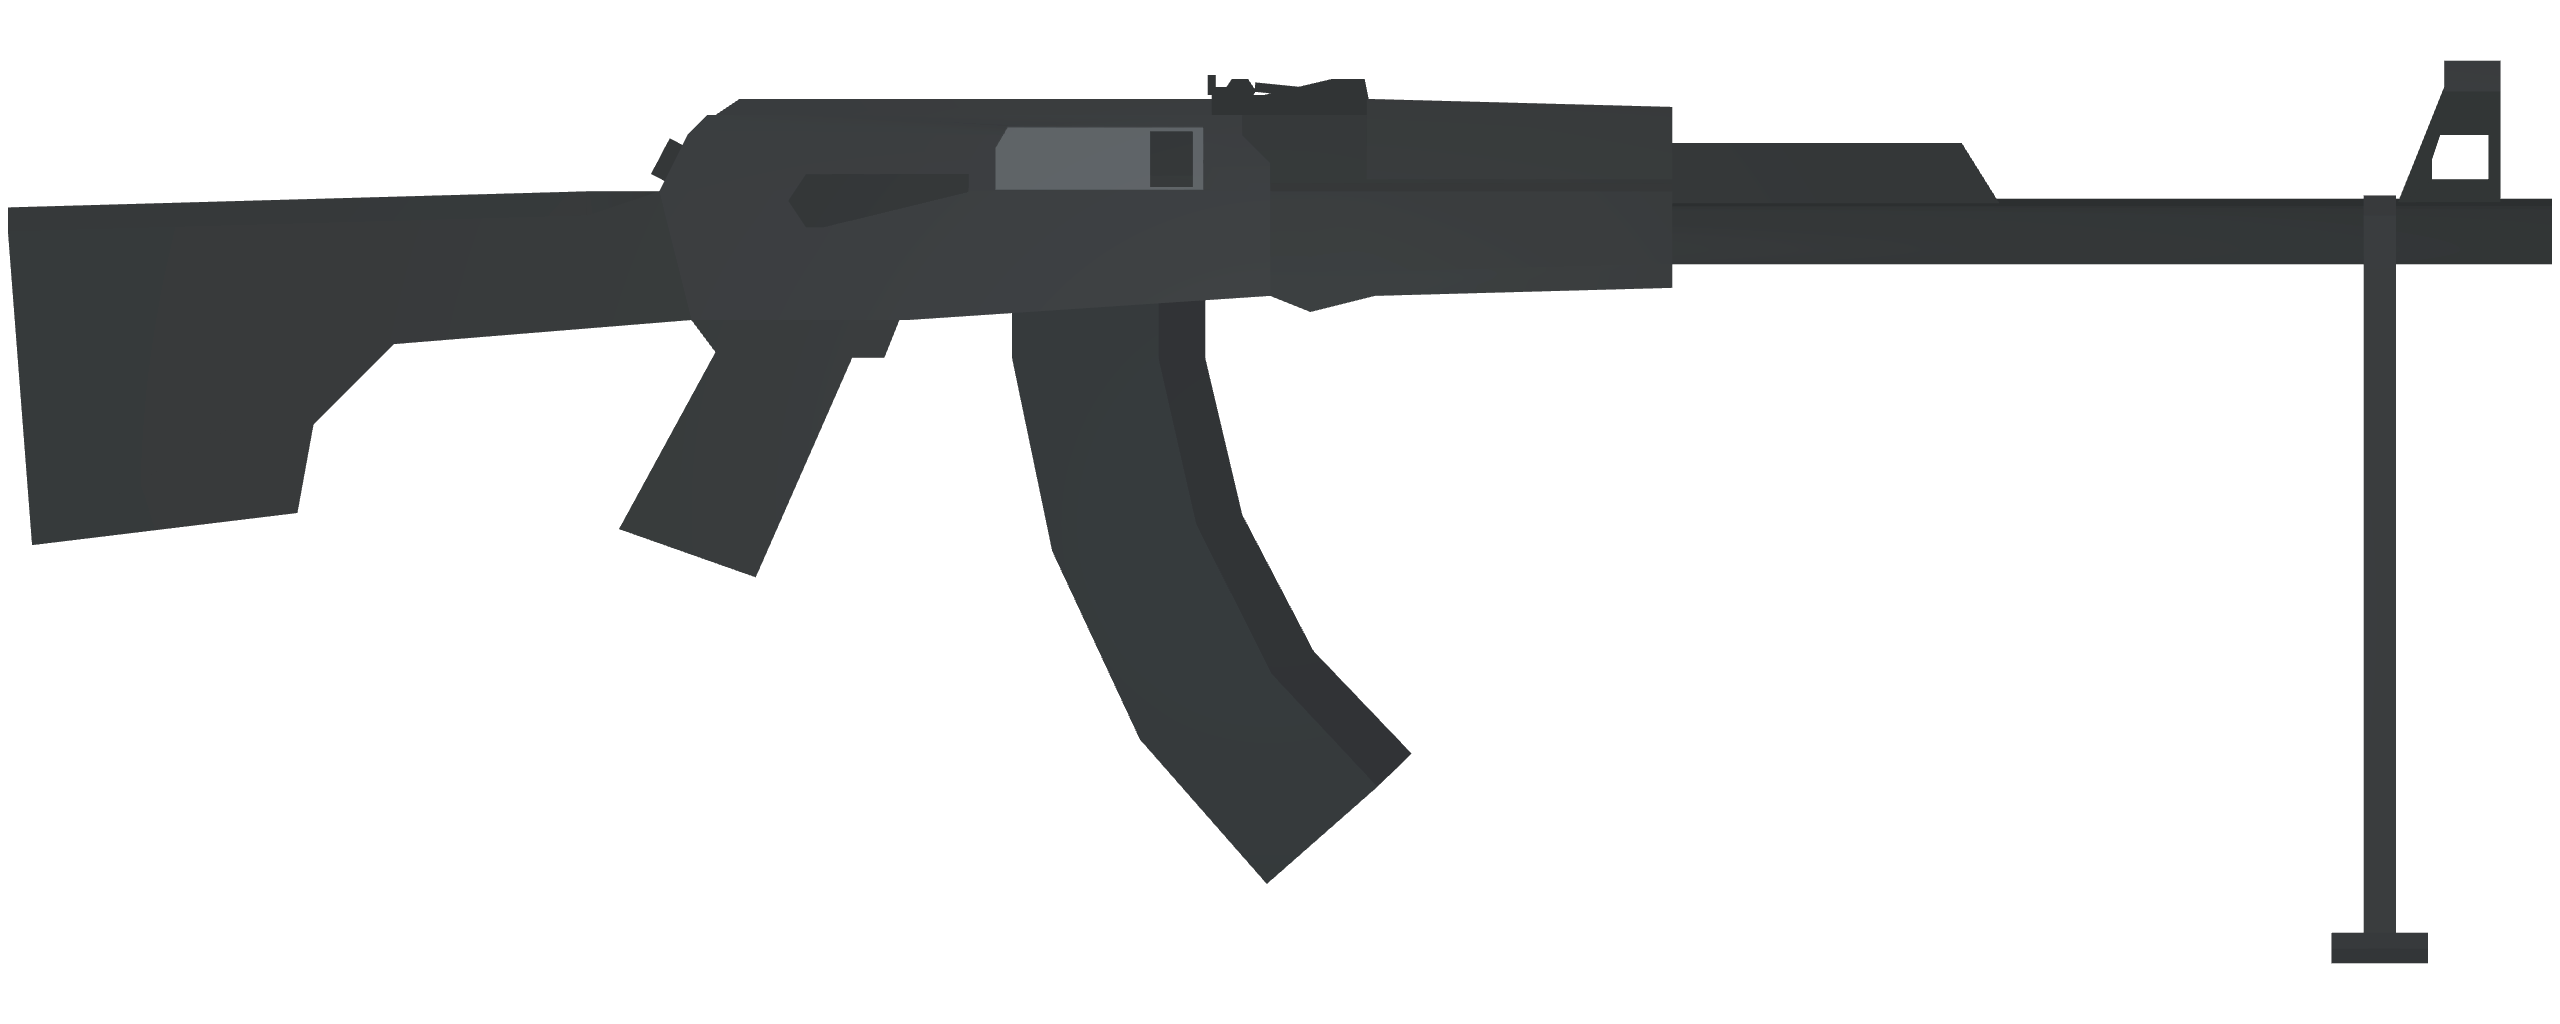 Unturned - All Weapons ID's for Uncreated Warfare Mods - Russian Weapons - B26DAC5